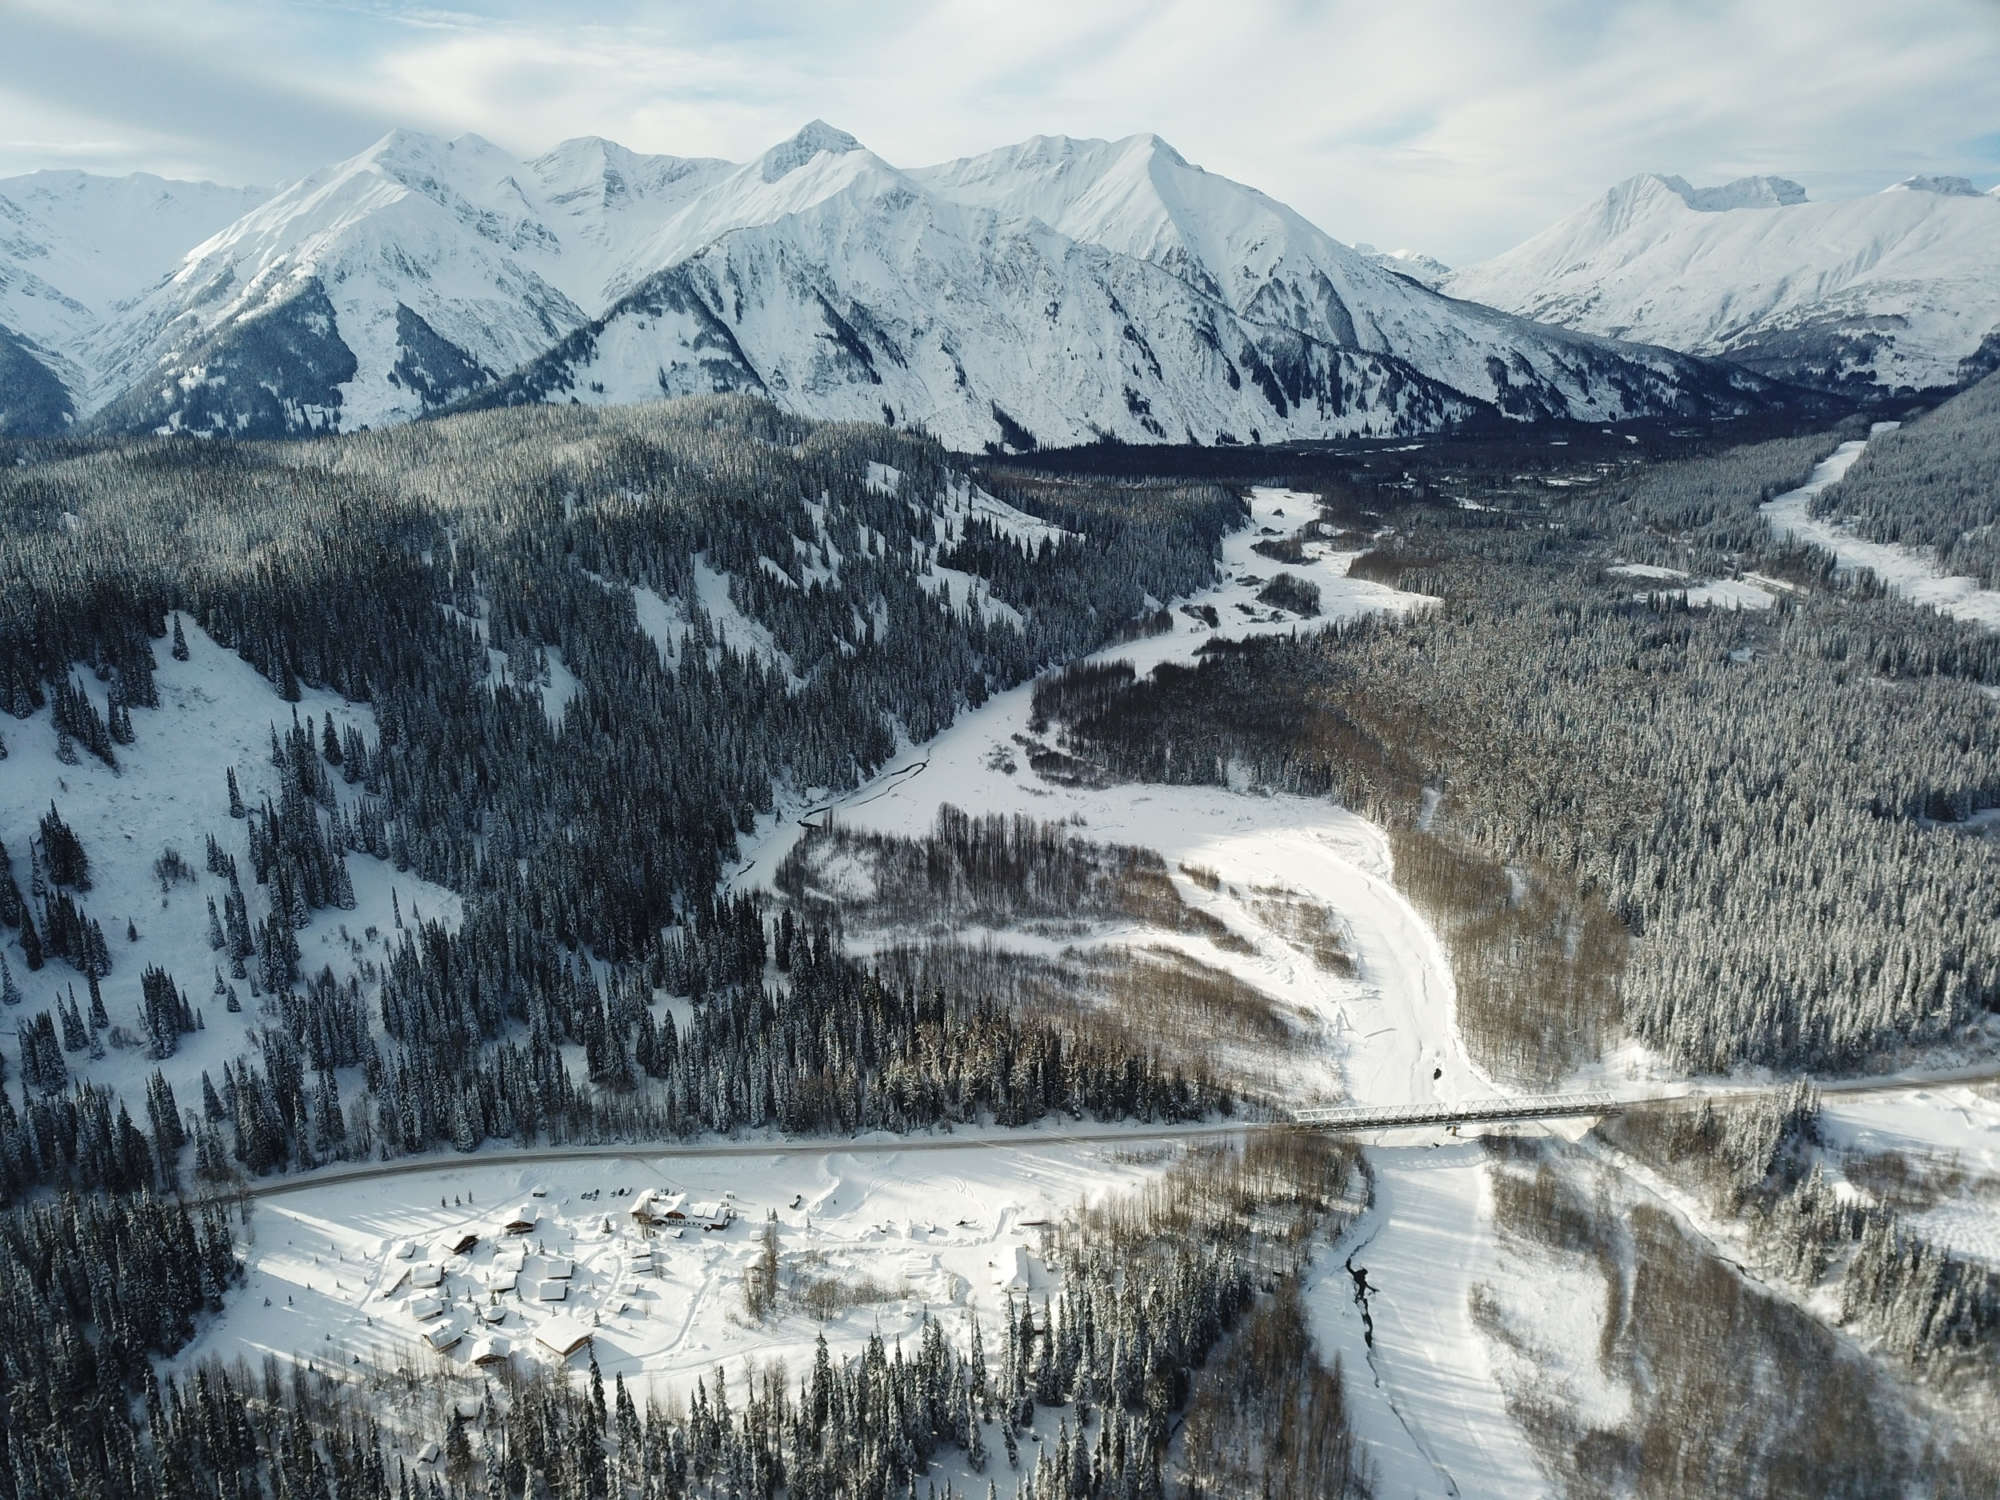 Bell 2 Lodge - Northern BC Canada home of Last Frontier Heliskiing